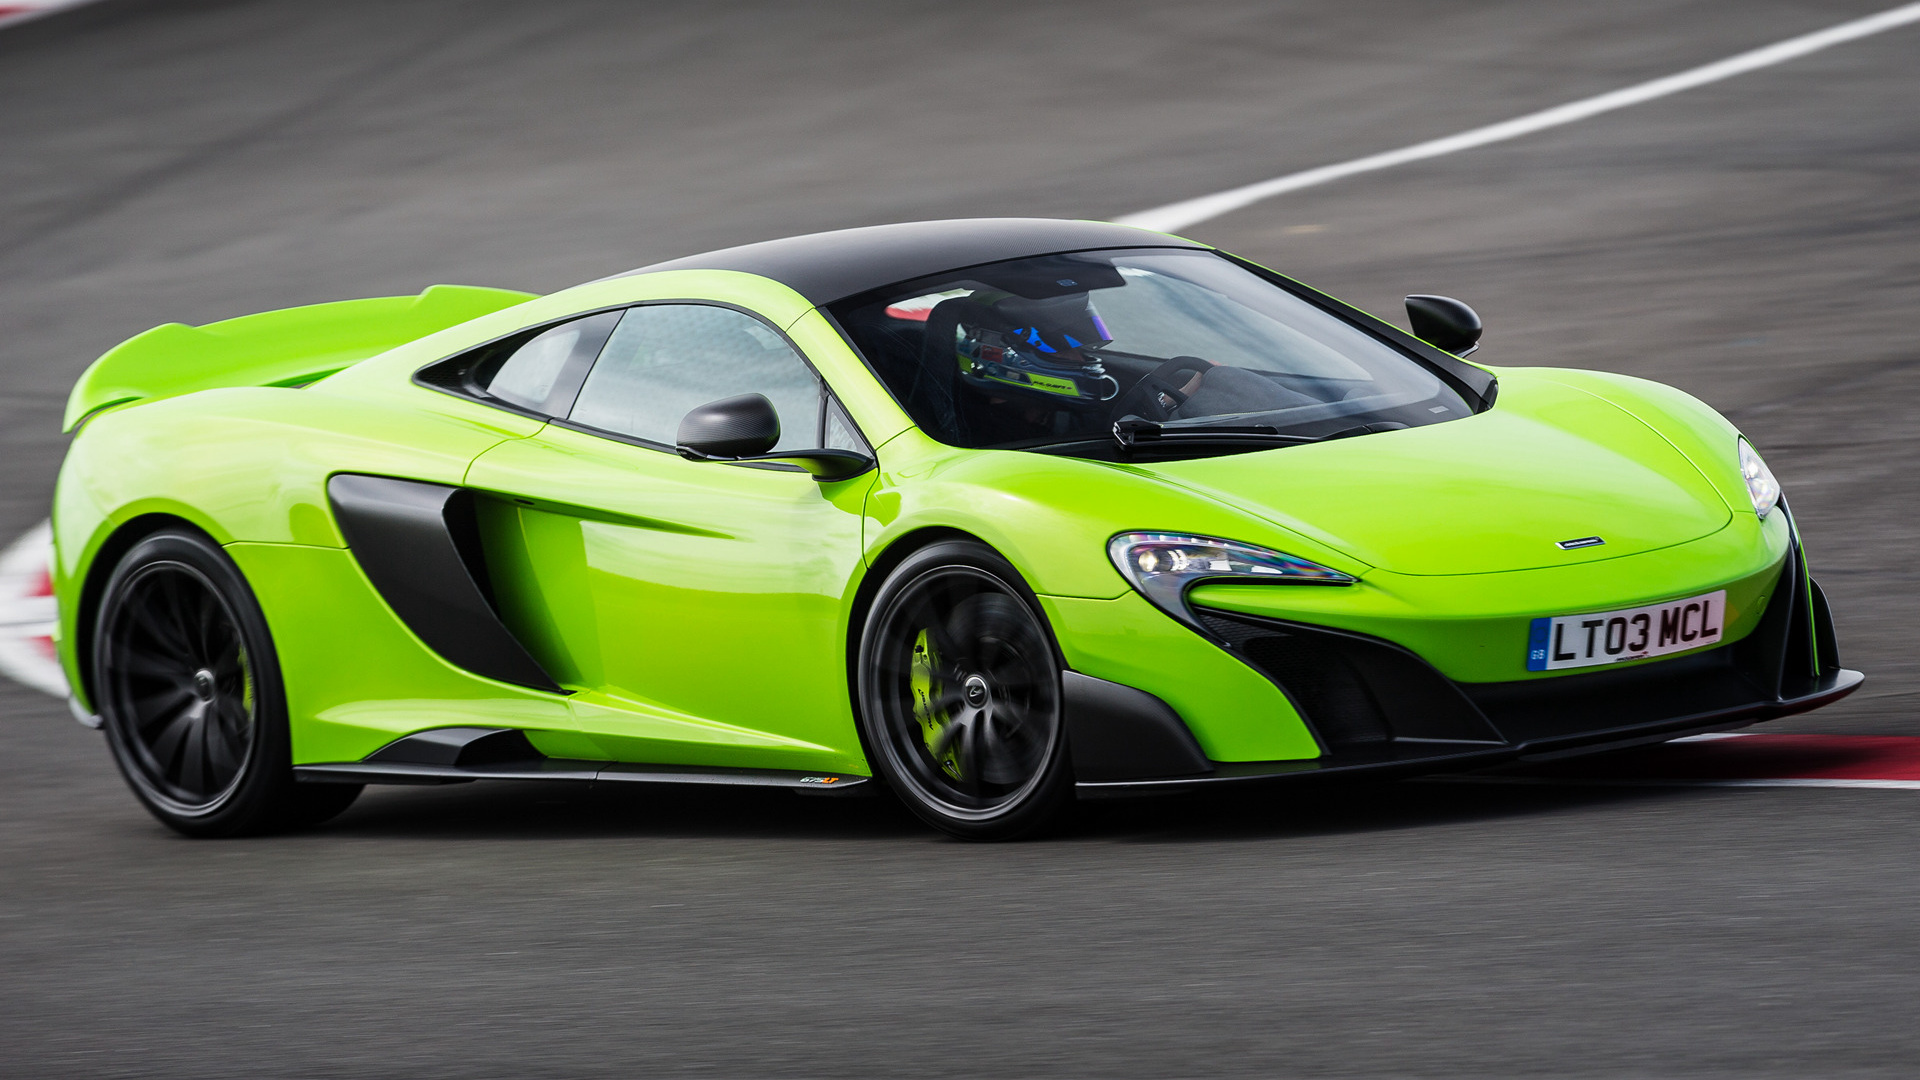 Bmw Cars Wallpapers Hd 2014 2015 Mclaren 675lt Wallpapers And Hd Images Car Pixel